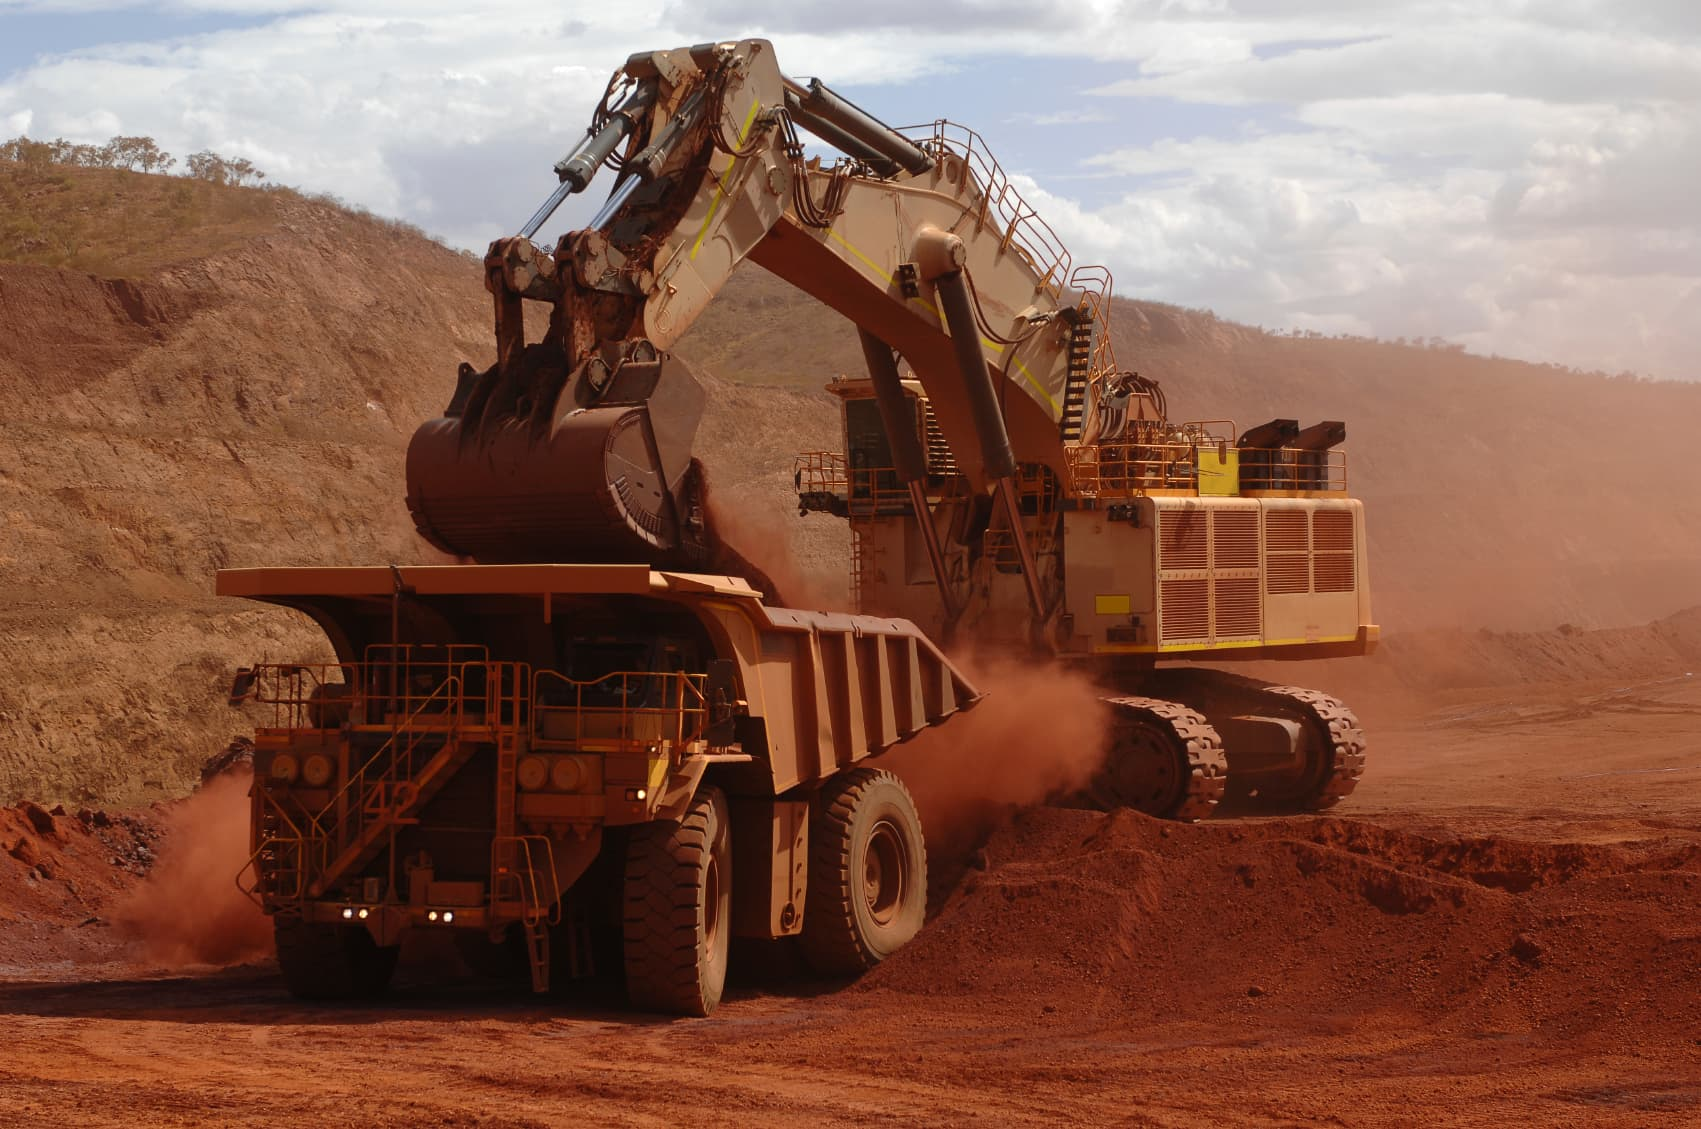 metal mining and the consumer industry Mining equipment market by equipment type (mineral processing, surface mining, underground mining, mining drills & breakers, crushing, pulverizing, screening) and application (metal, mineral, coal mining) - global opportunity analysis and industry forecast, 2015-2022.